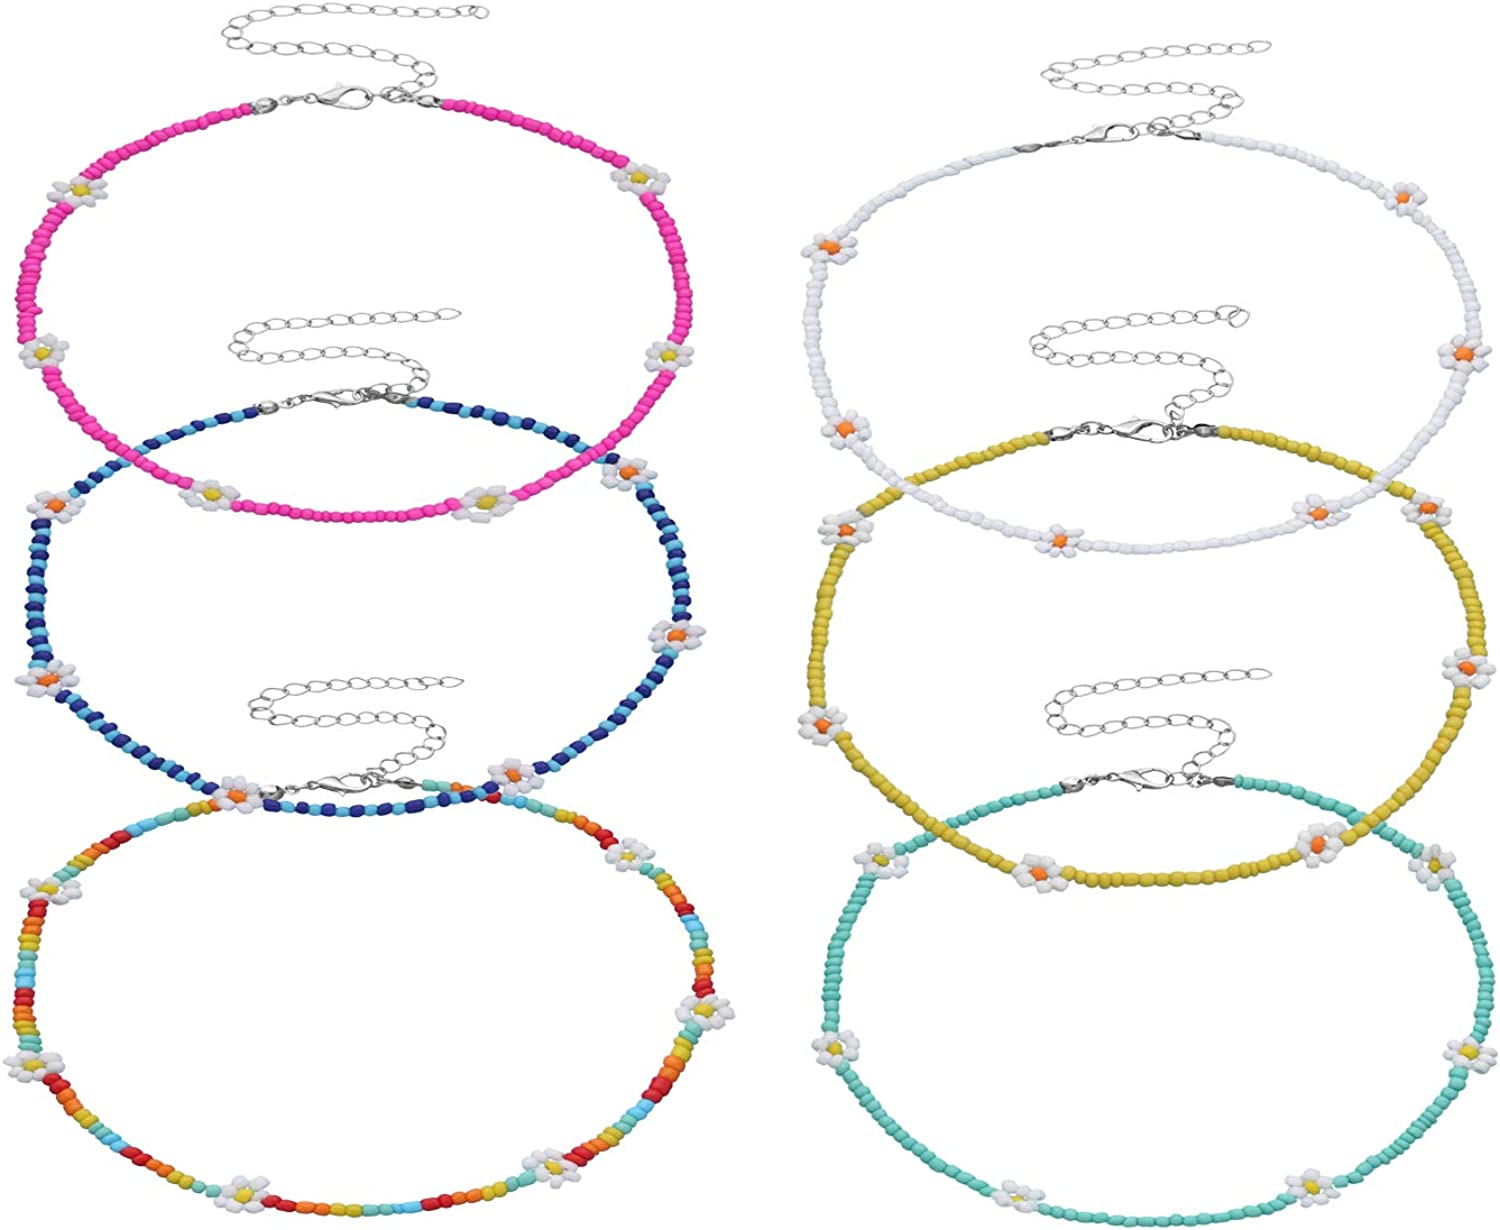 6pcs Colorful Seed Beaded Daisy Flower Choker Necklaces Set Ajdustable Chain Clavicle for Women Girls Cute Handmade Boho Holiday Bohemian Summer Jewelry